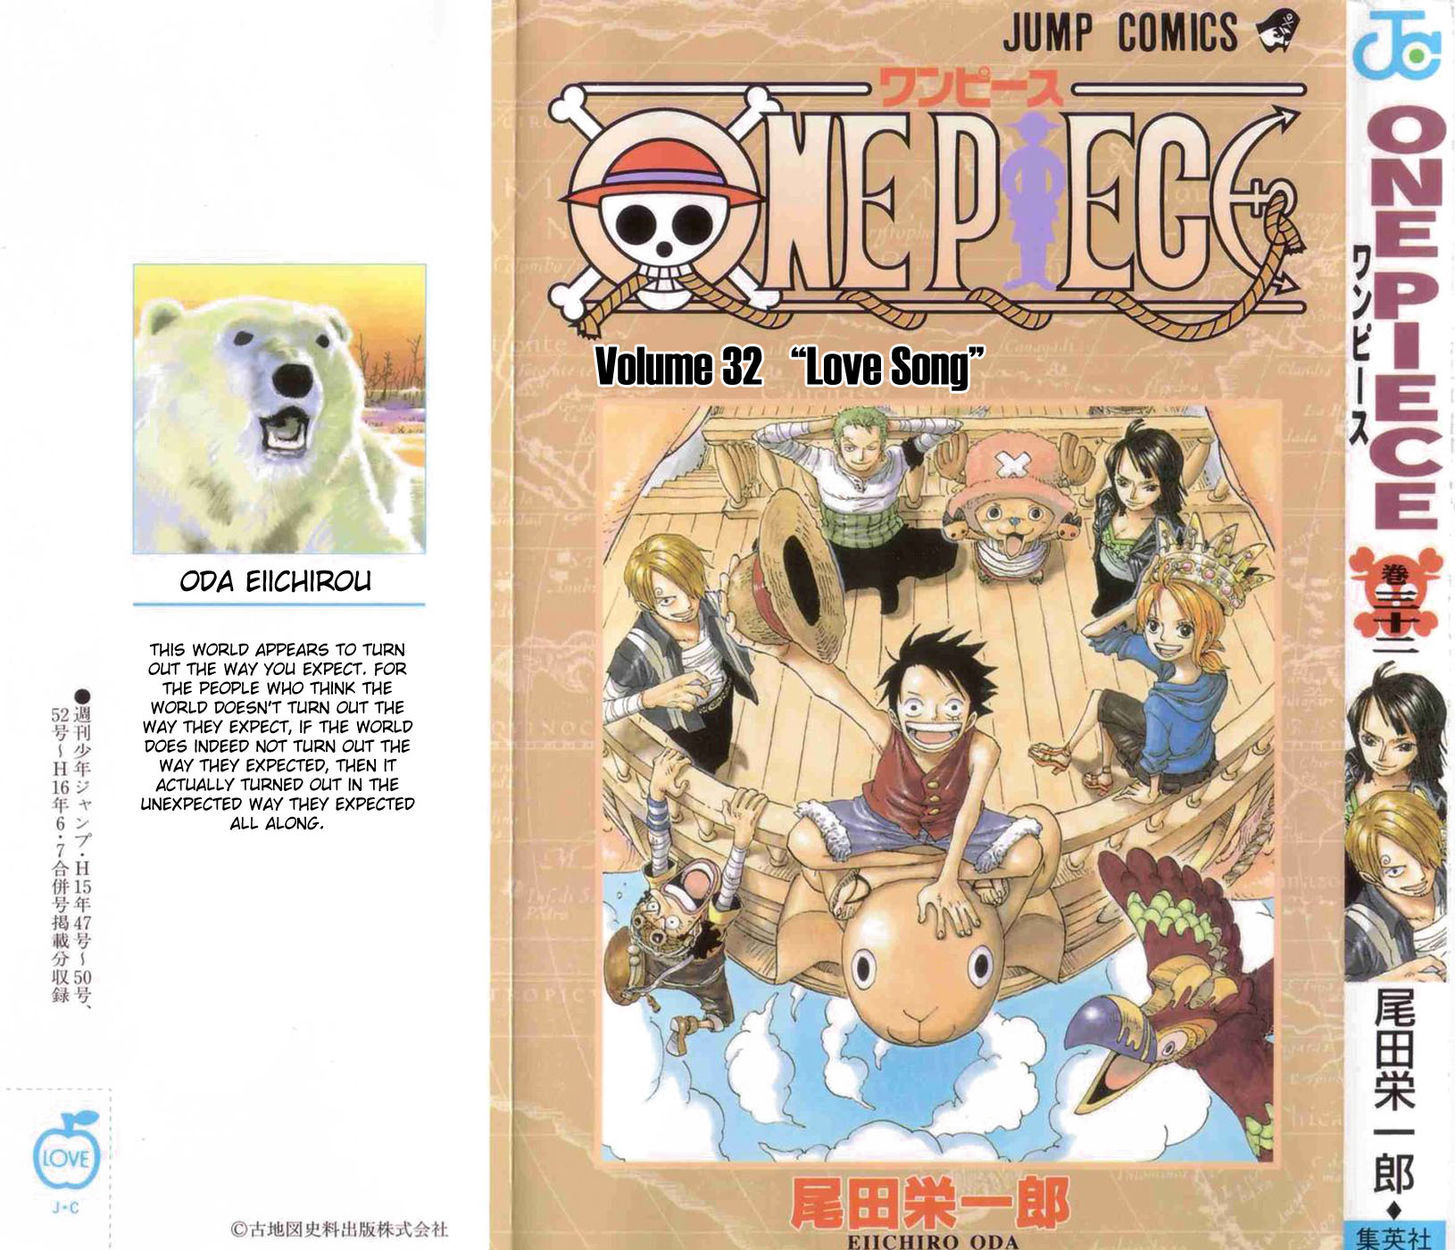 https://im.nineanime.com/comics/pic9/32/96/2644/OnePiece2960940.jpg Page 1